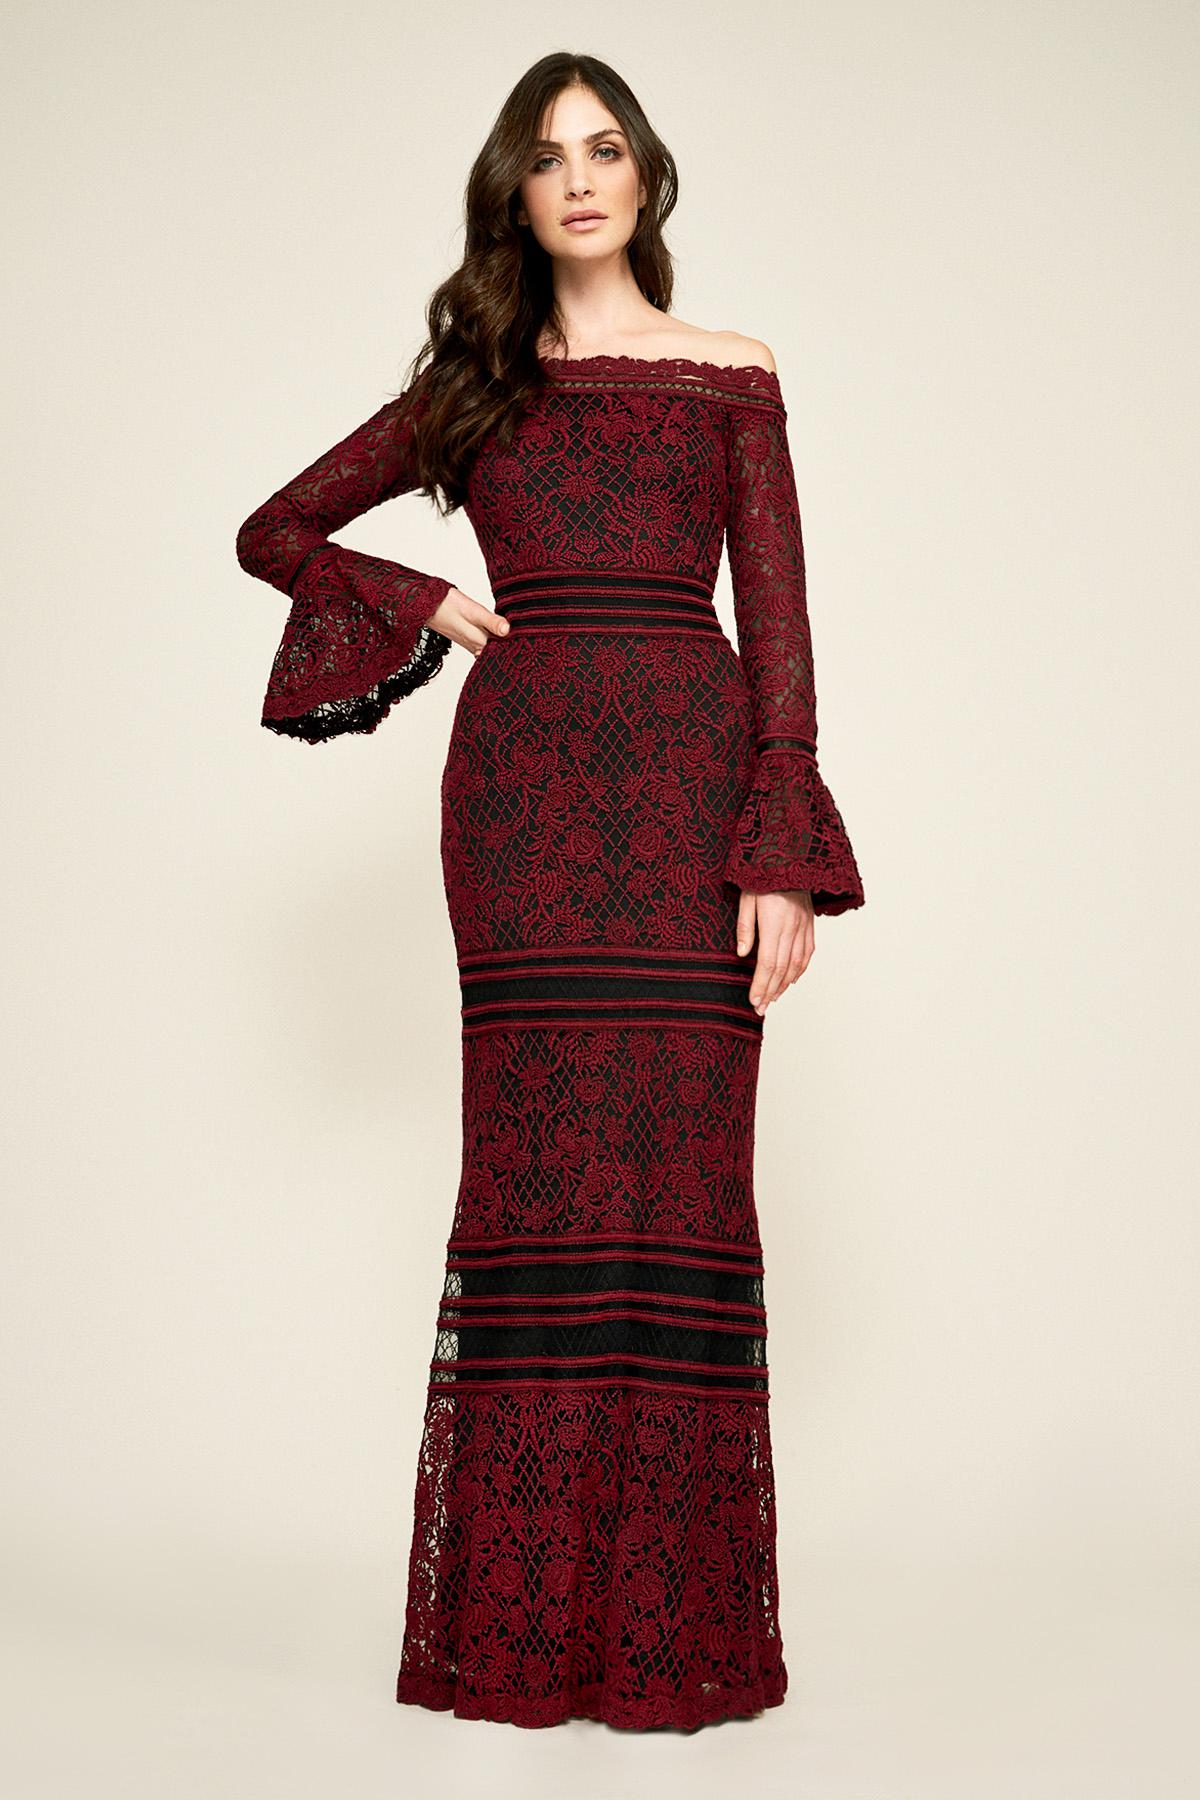 Lyst - Tadashi Shoji Bell Sleeve Embroidered Lace Gown in Red 3569af6af